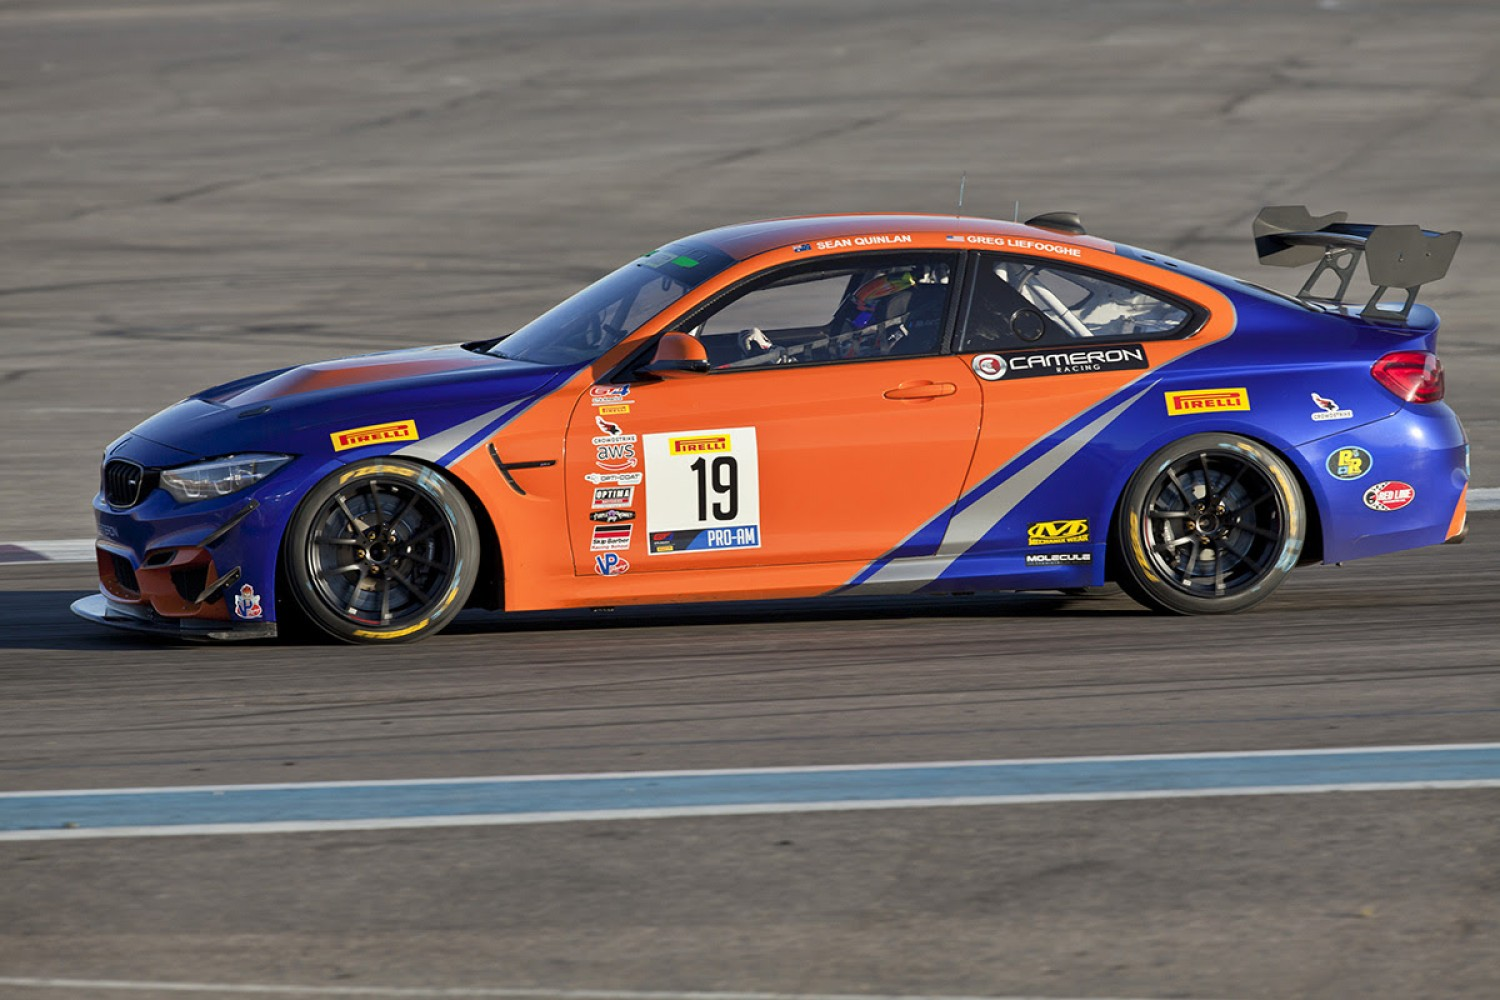 2019 Sprint X Champions Cameron Racing Returns to Pirelli GT4 America Program